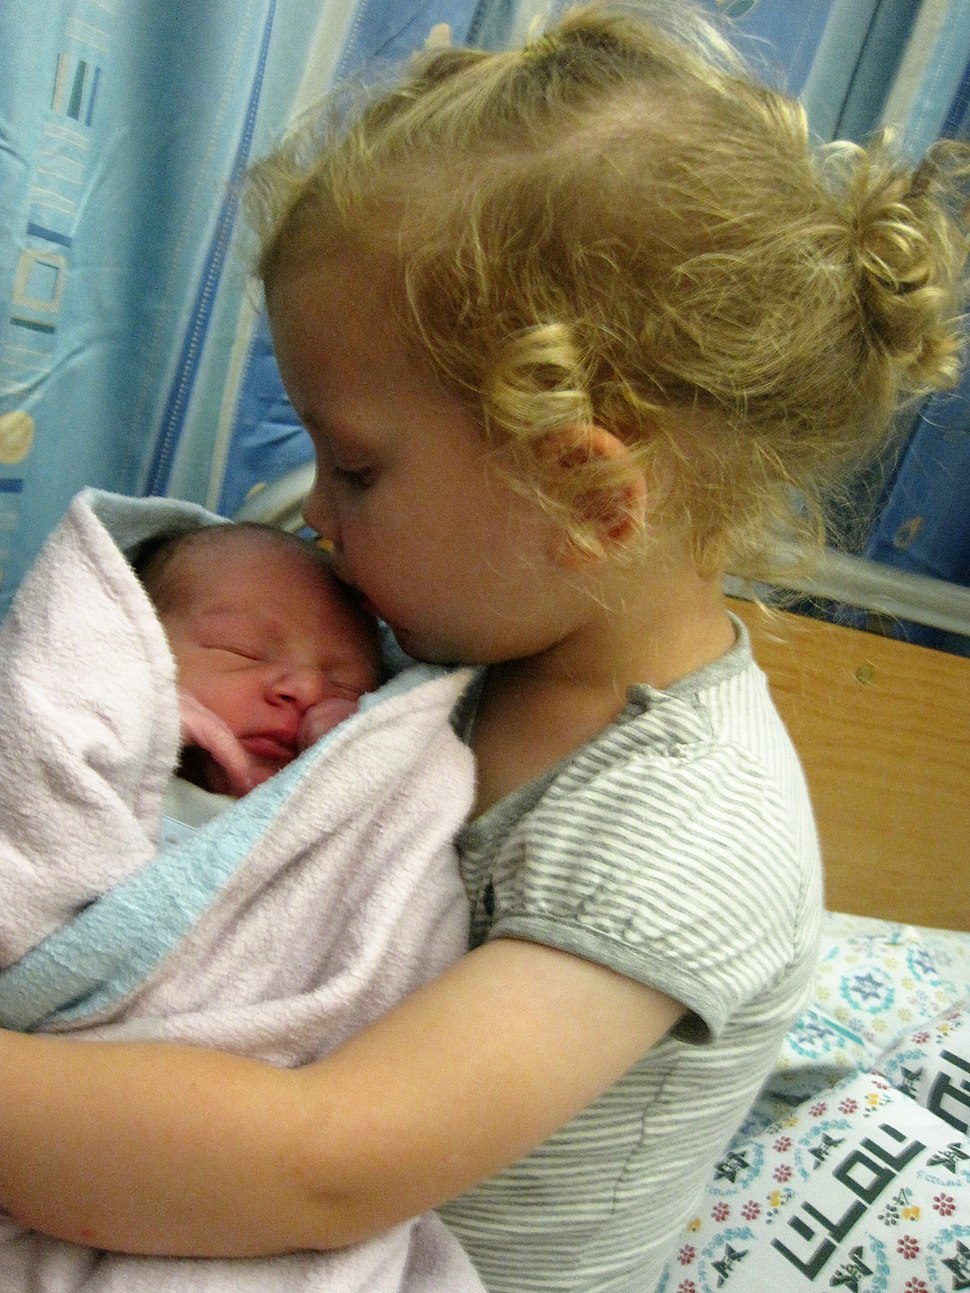 A 3-year-old embraces her brother less than a day after he was born